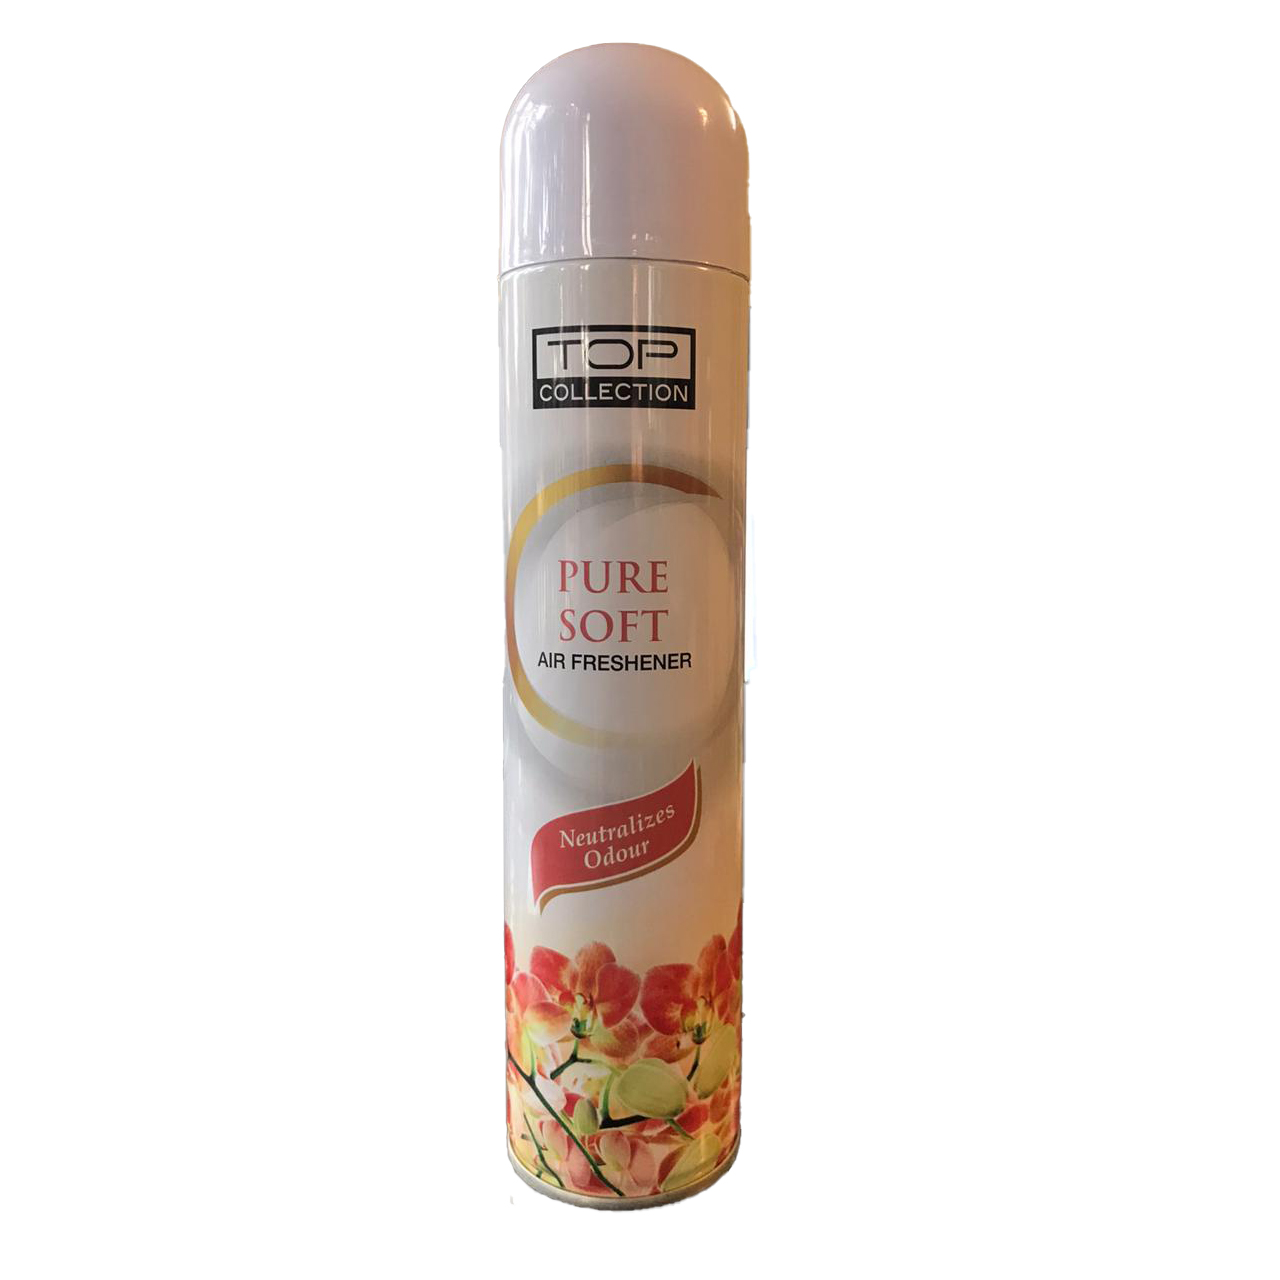 Top Collection Pure Soft Air Freshener Neutralizes Odour - 300ml